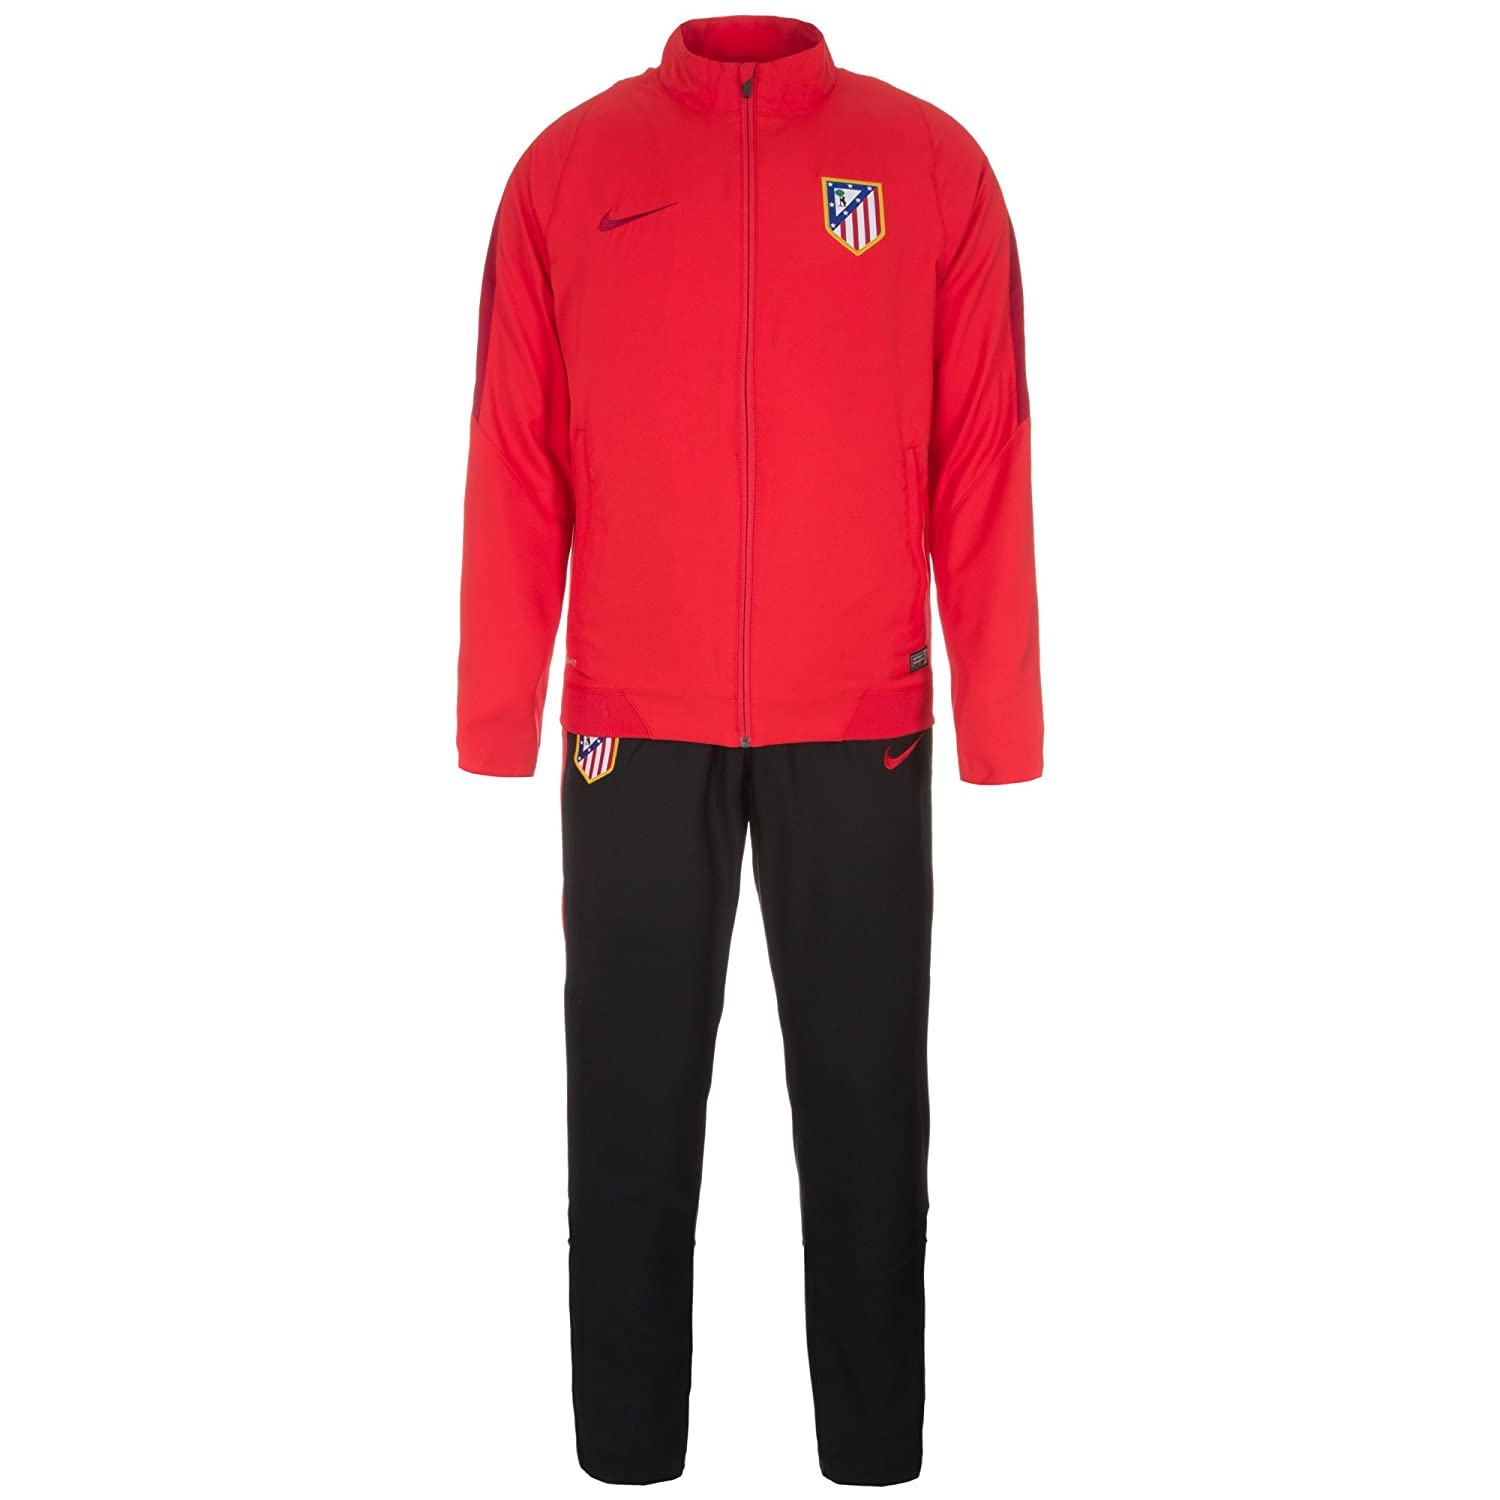 Nike 2015 - 2016 Atletico Madrid Woven Tracksuit (Red), Rojo ...